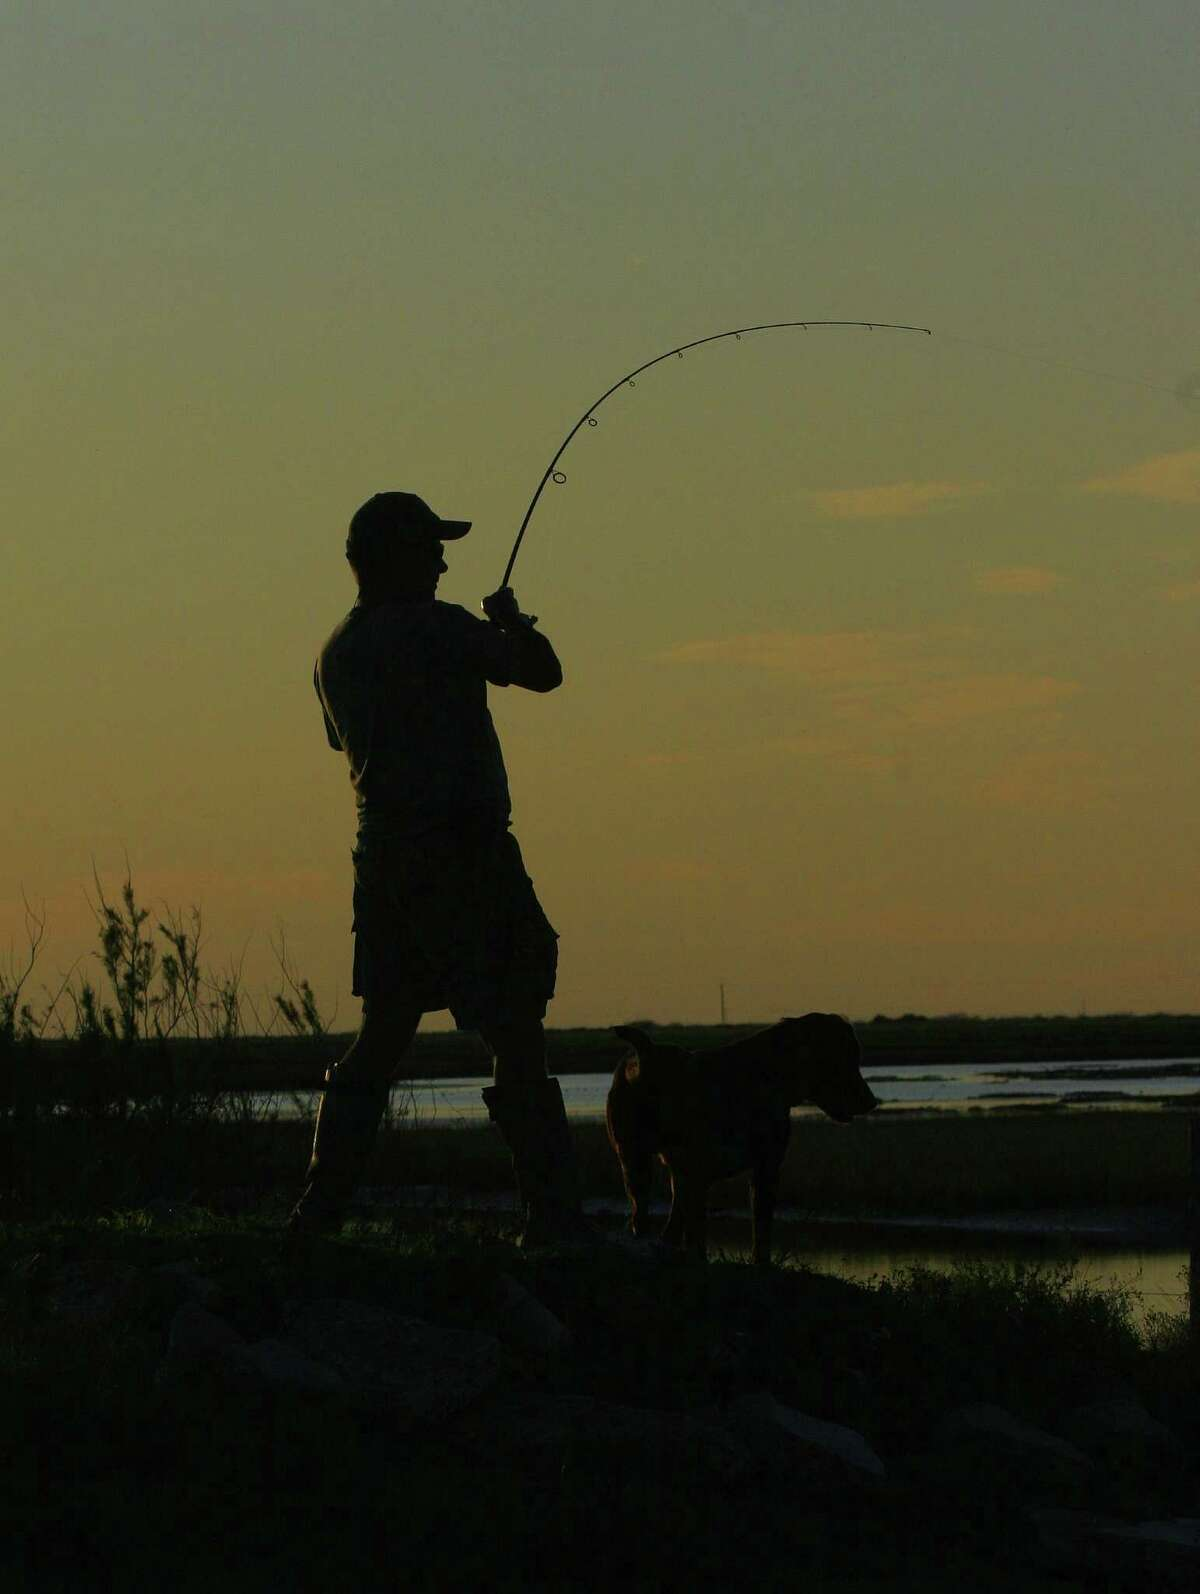 Now through September, Texas anglers who concentrate their efforts between dusk and dawn can enjoy some of the season's best fishing and avoid the miserable, potentially dangerous, heat of a late-summer day.